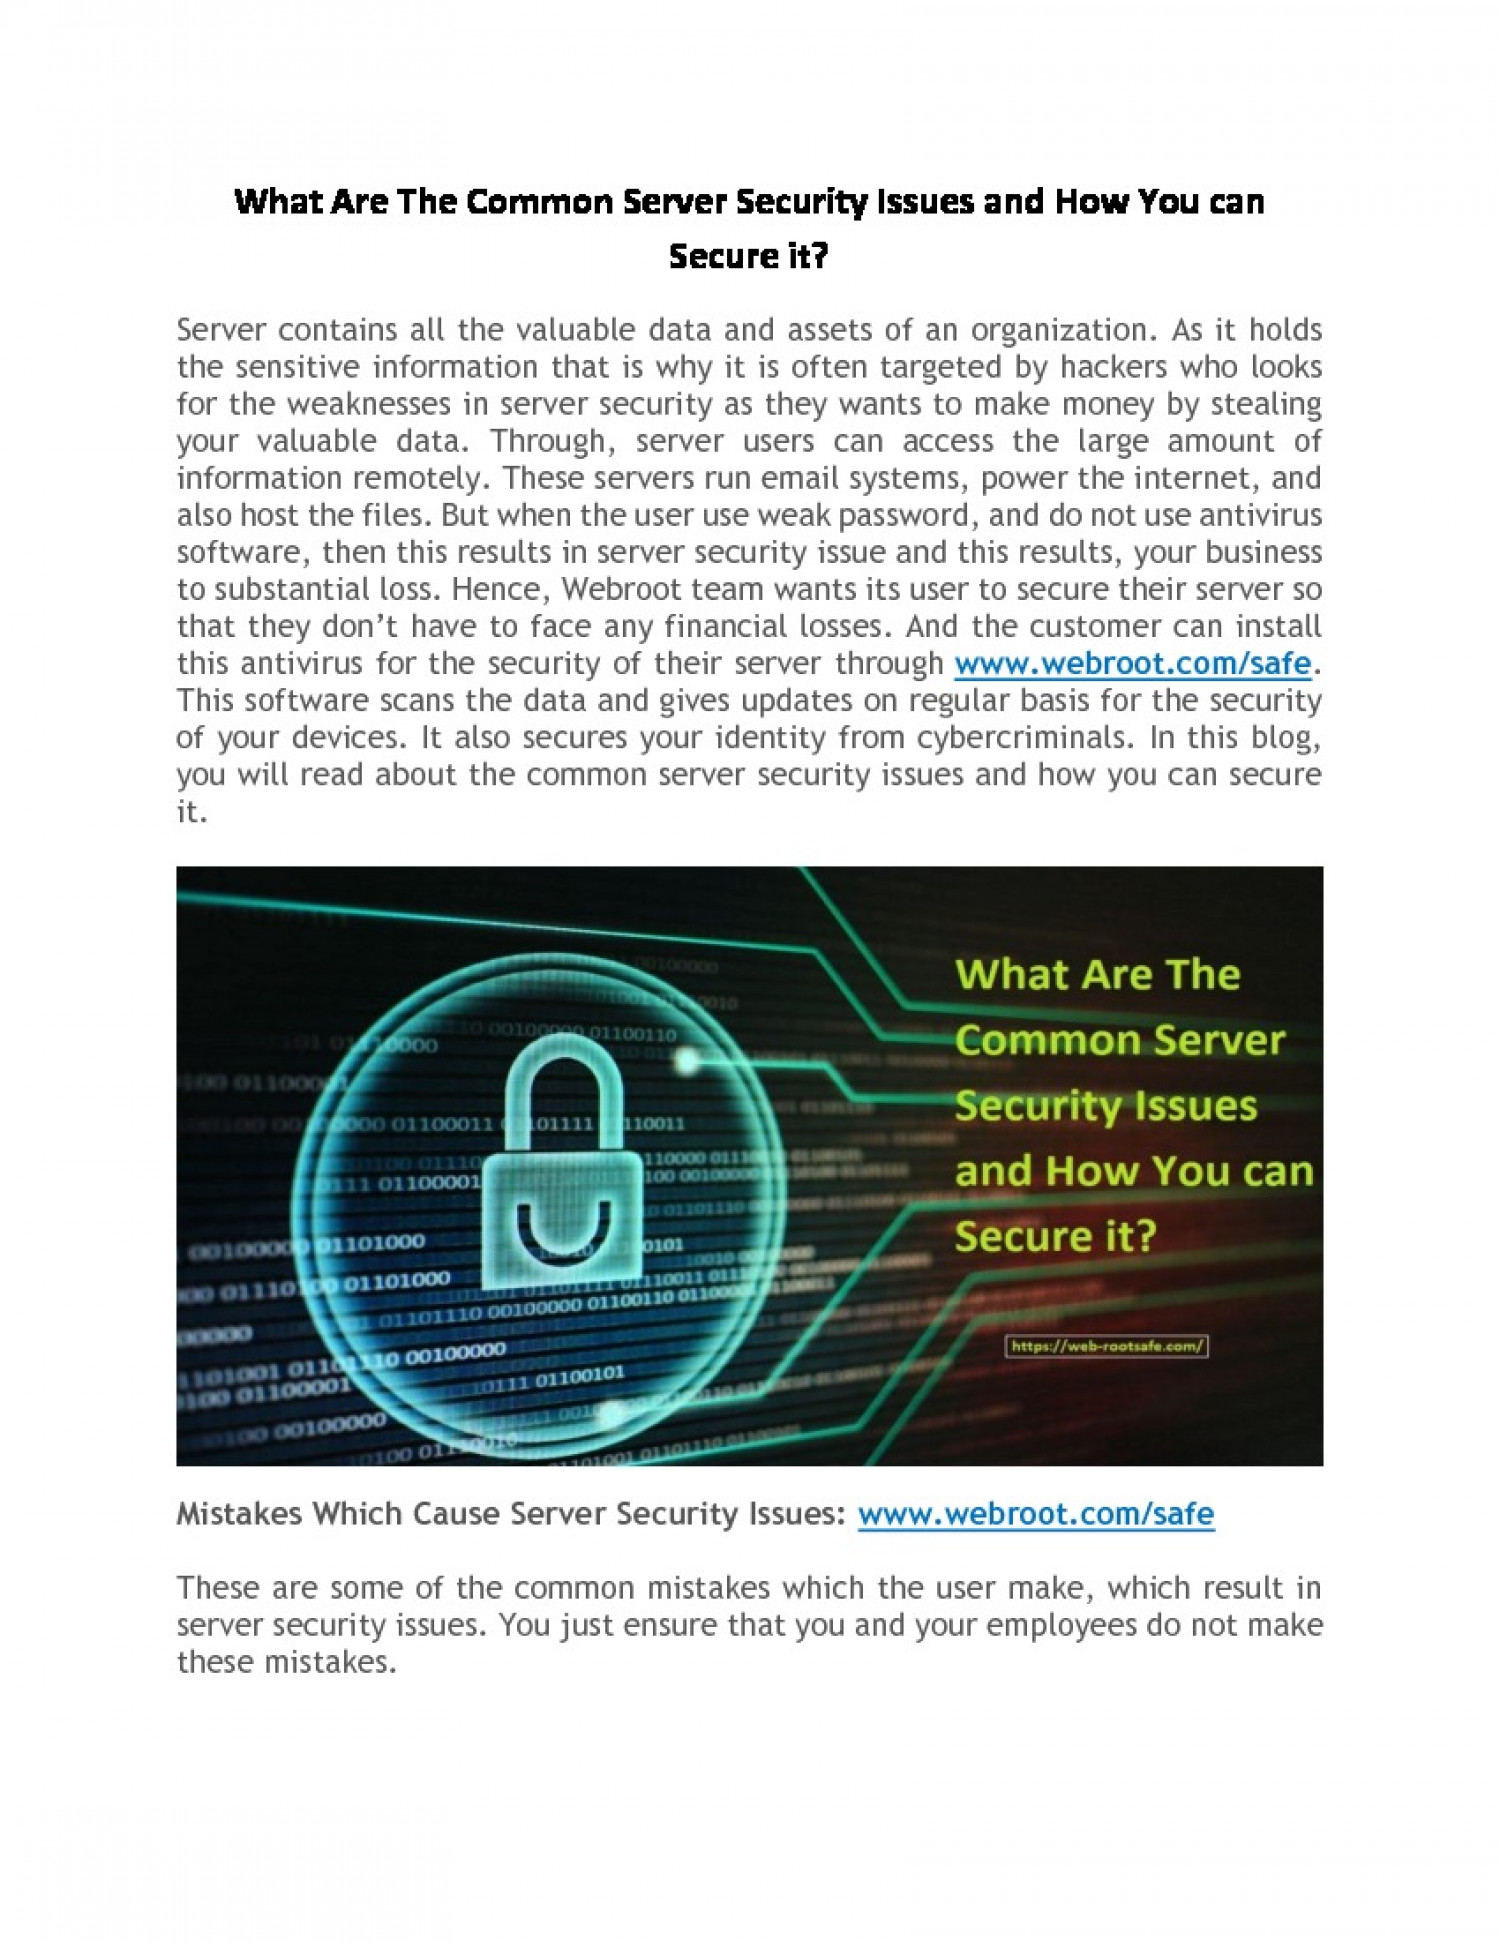 What Are The Common Server Security Issues and How You can Secure it? Infographic